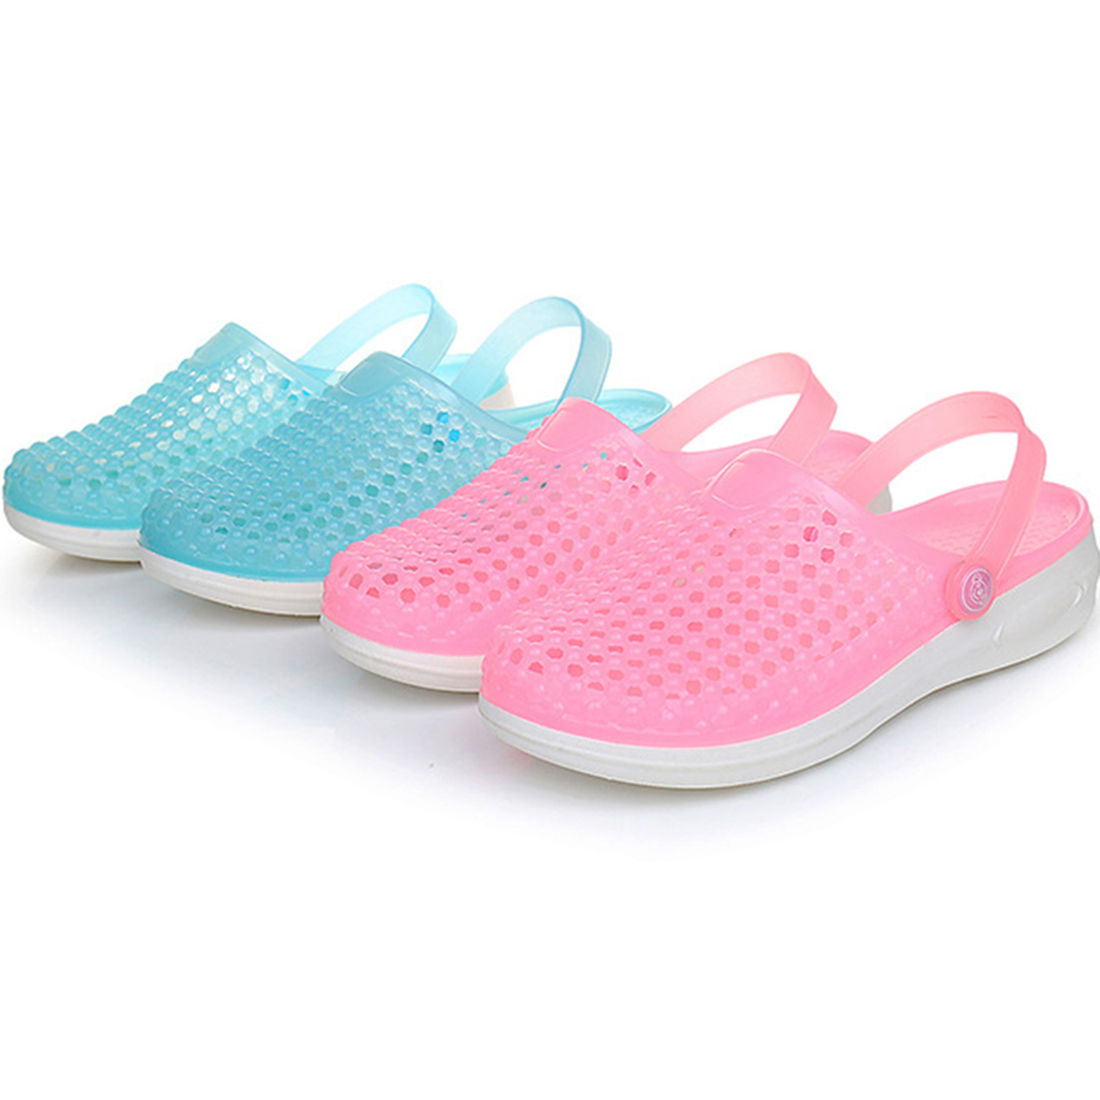 Summer Women Mules Clogs Summer Beach Breathable Slippers